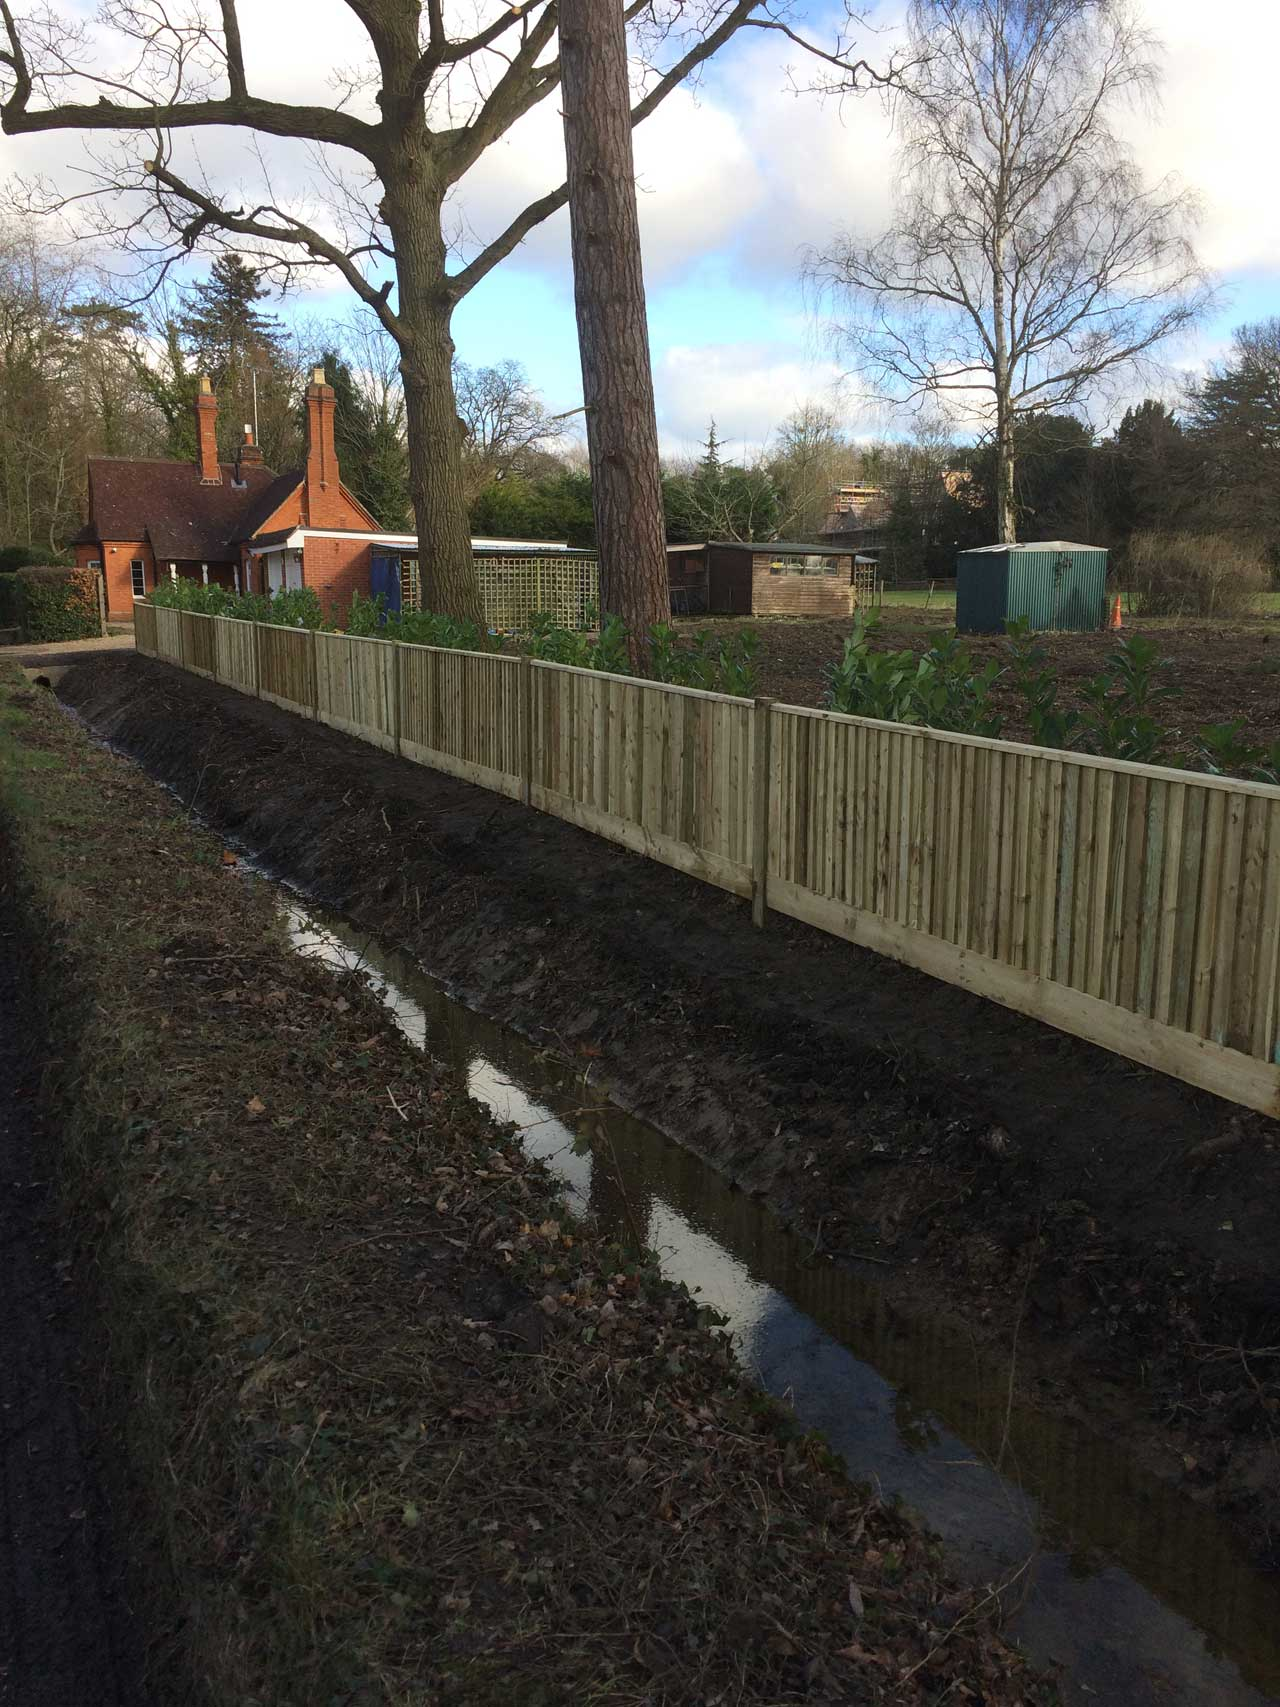 Image of a ditch after cleaning - Digger hire and excavator hire in Berkshire, Hampshire and Surrey - ditch after cleaning - Ditching, drainage and flood minimisation - Berkshire, Hampshire and Surrey.